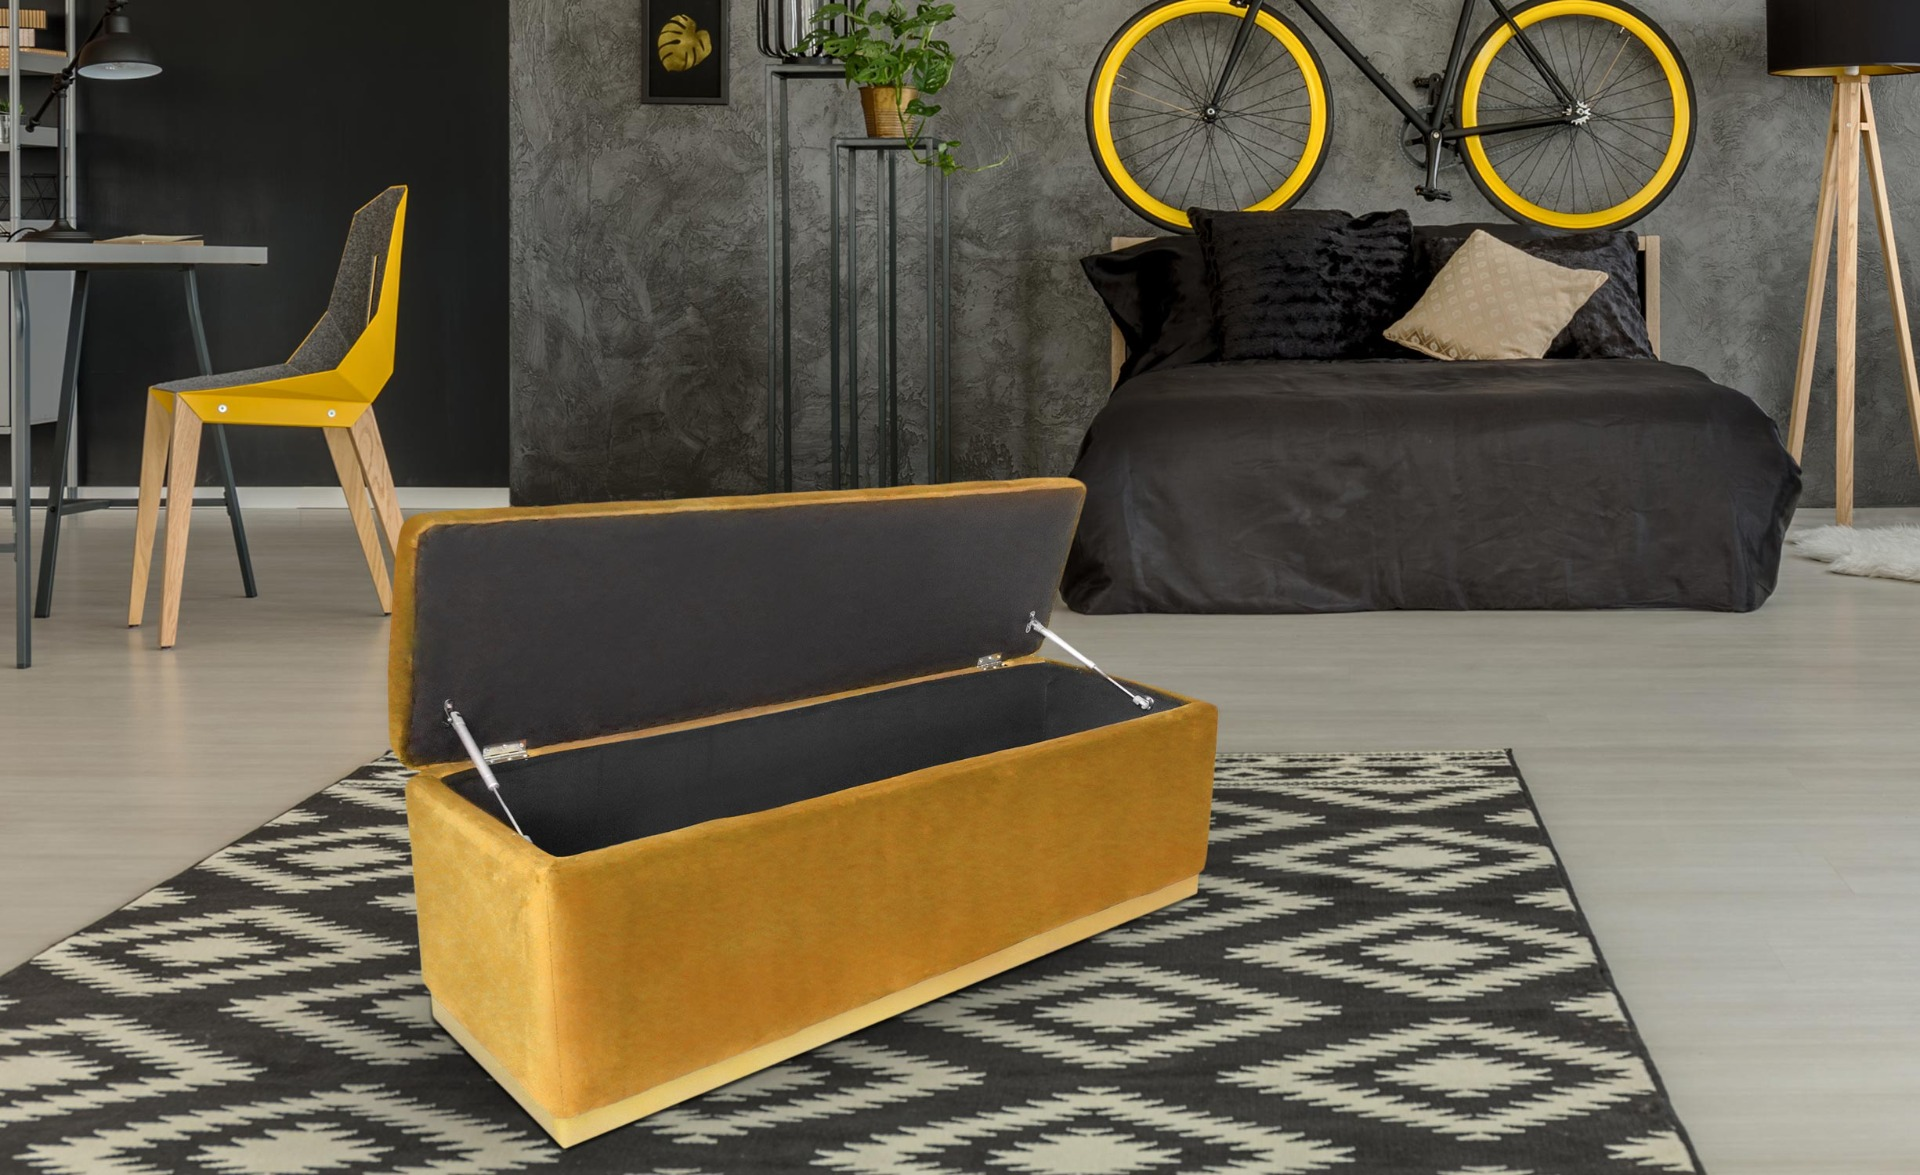 Banc coffre Alexandrie Velours Ocre Pied Or